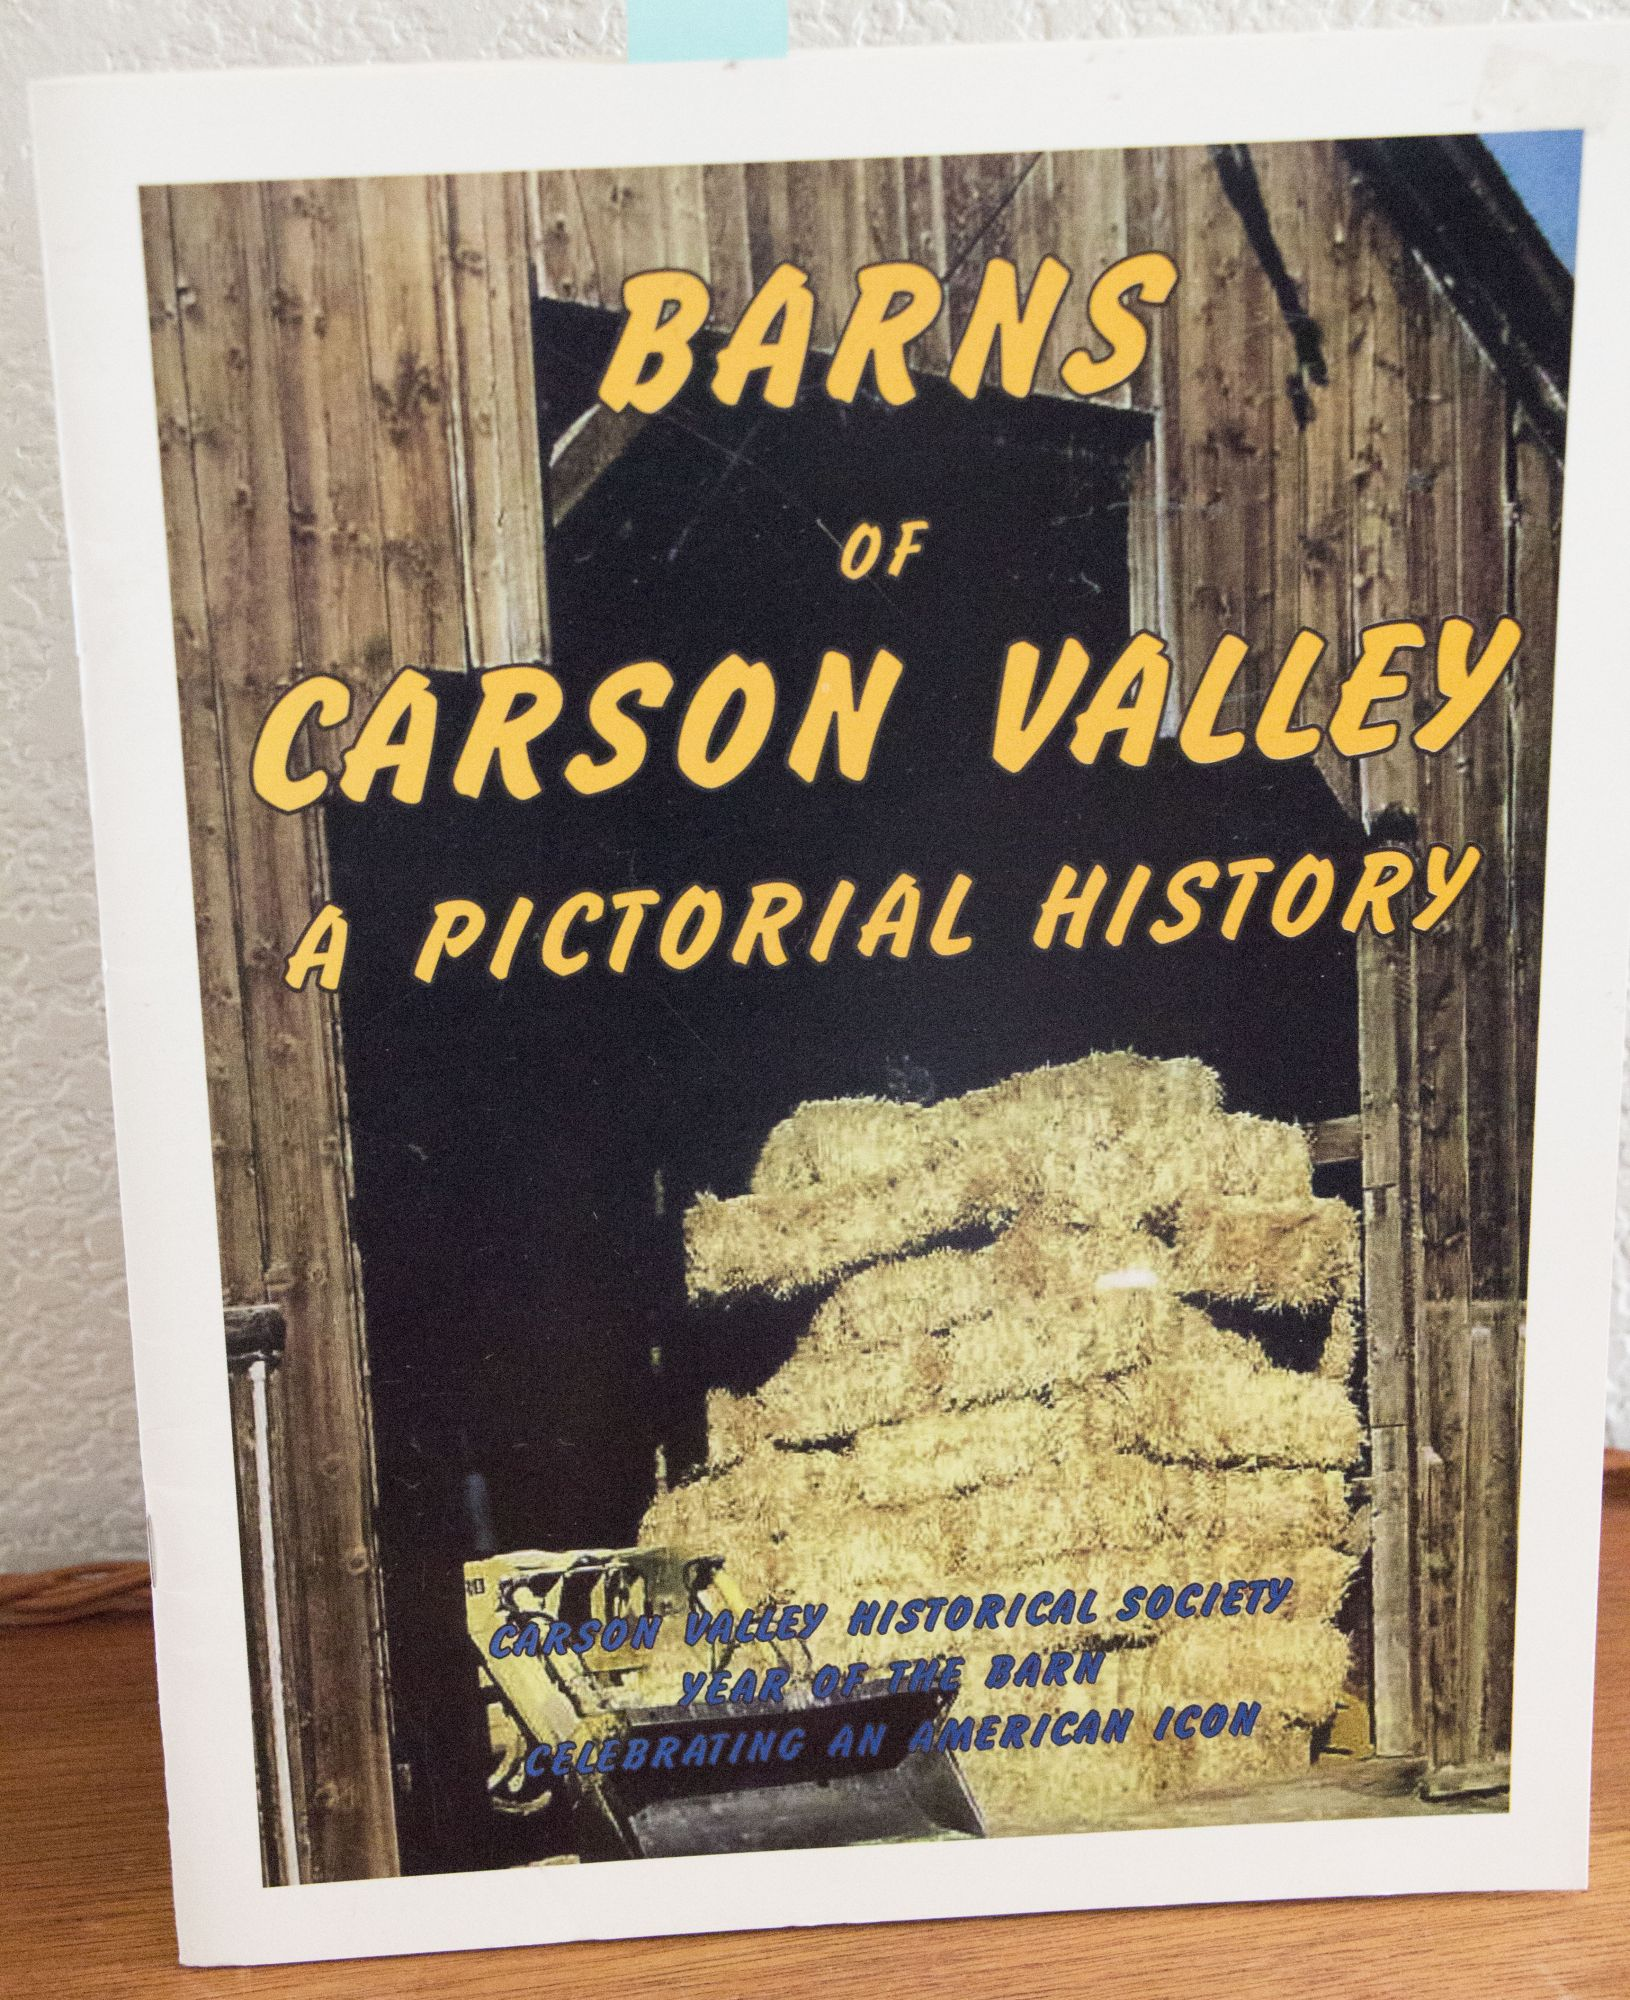 Barns of Carson Valley A Pictorial History